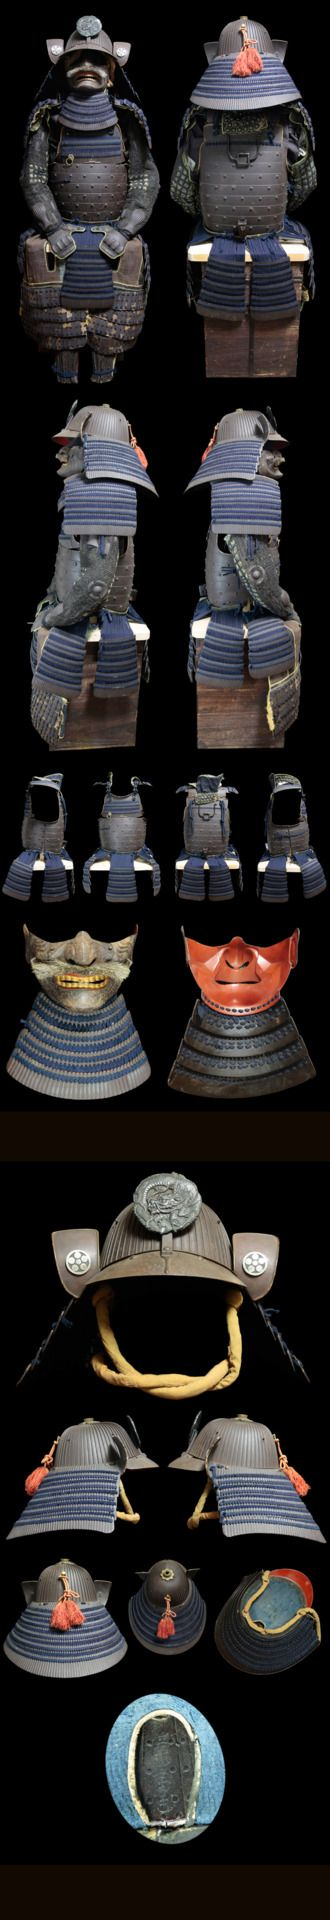 Japanese SAMURAI ARMOR Japan - love the overall shape of the shikoro